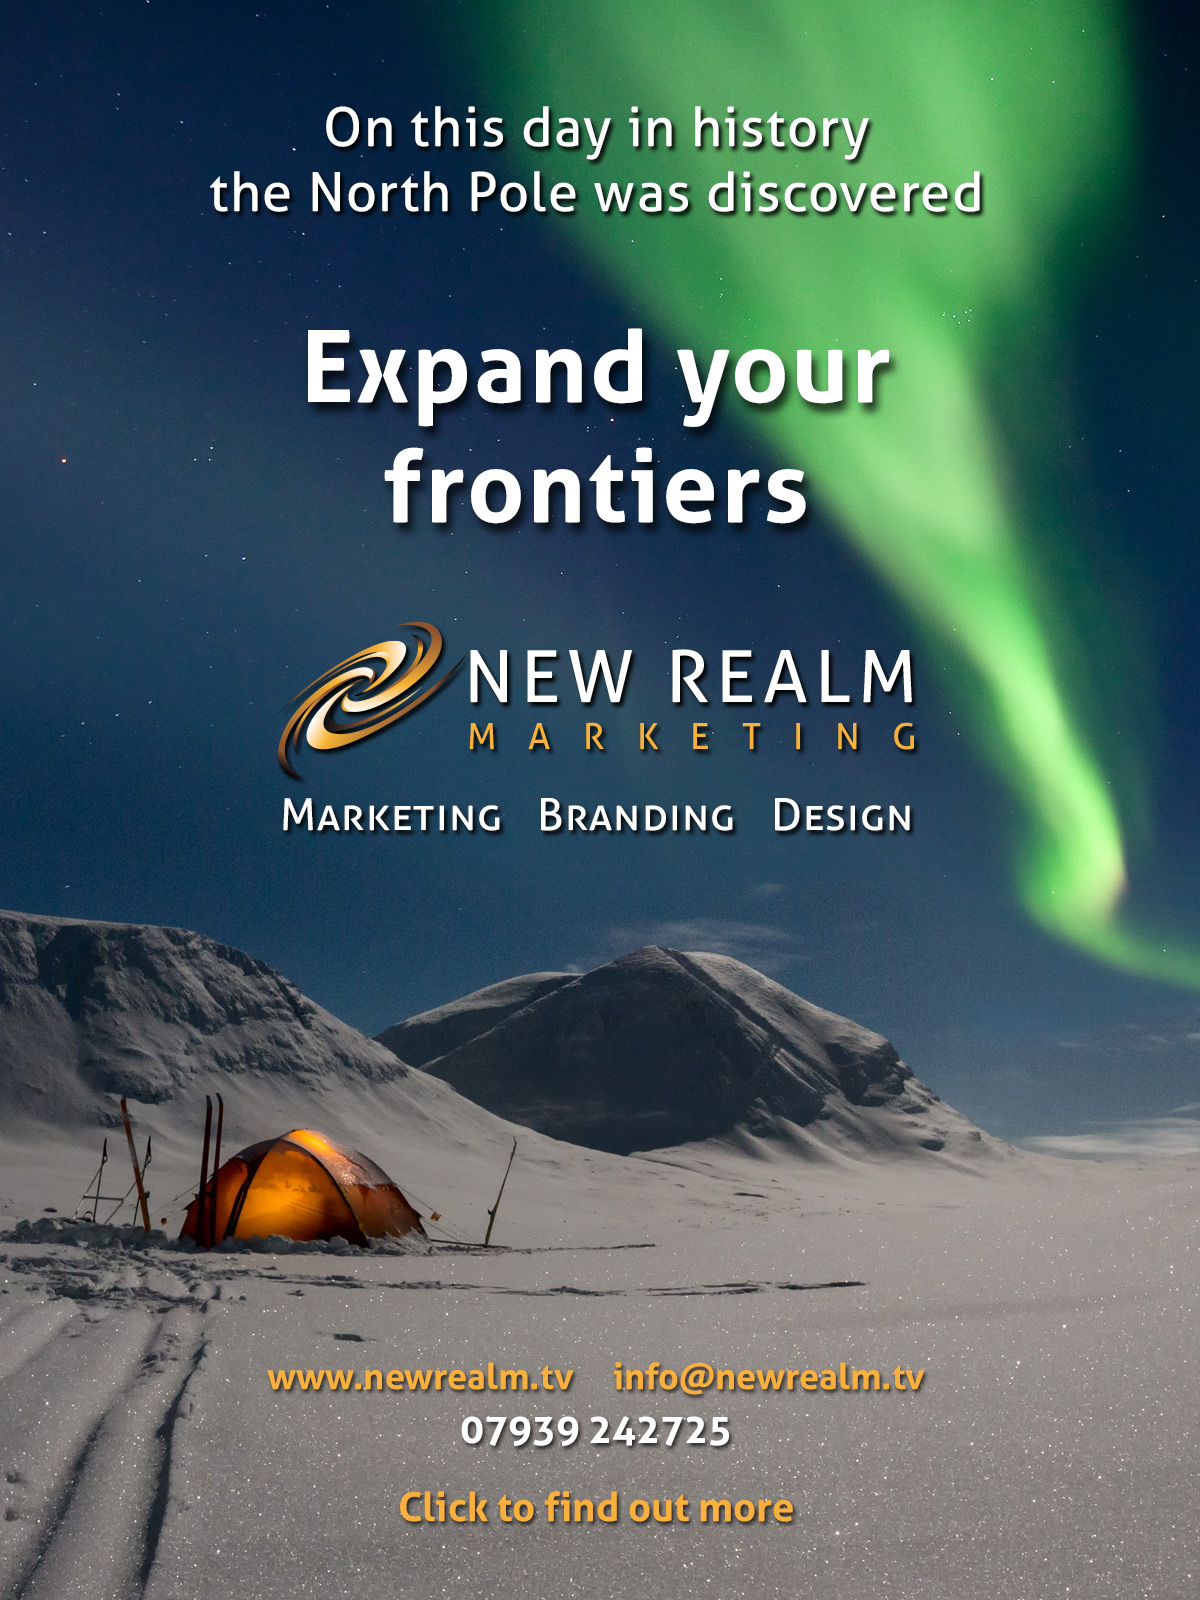 New Realm North Pole advert